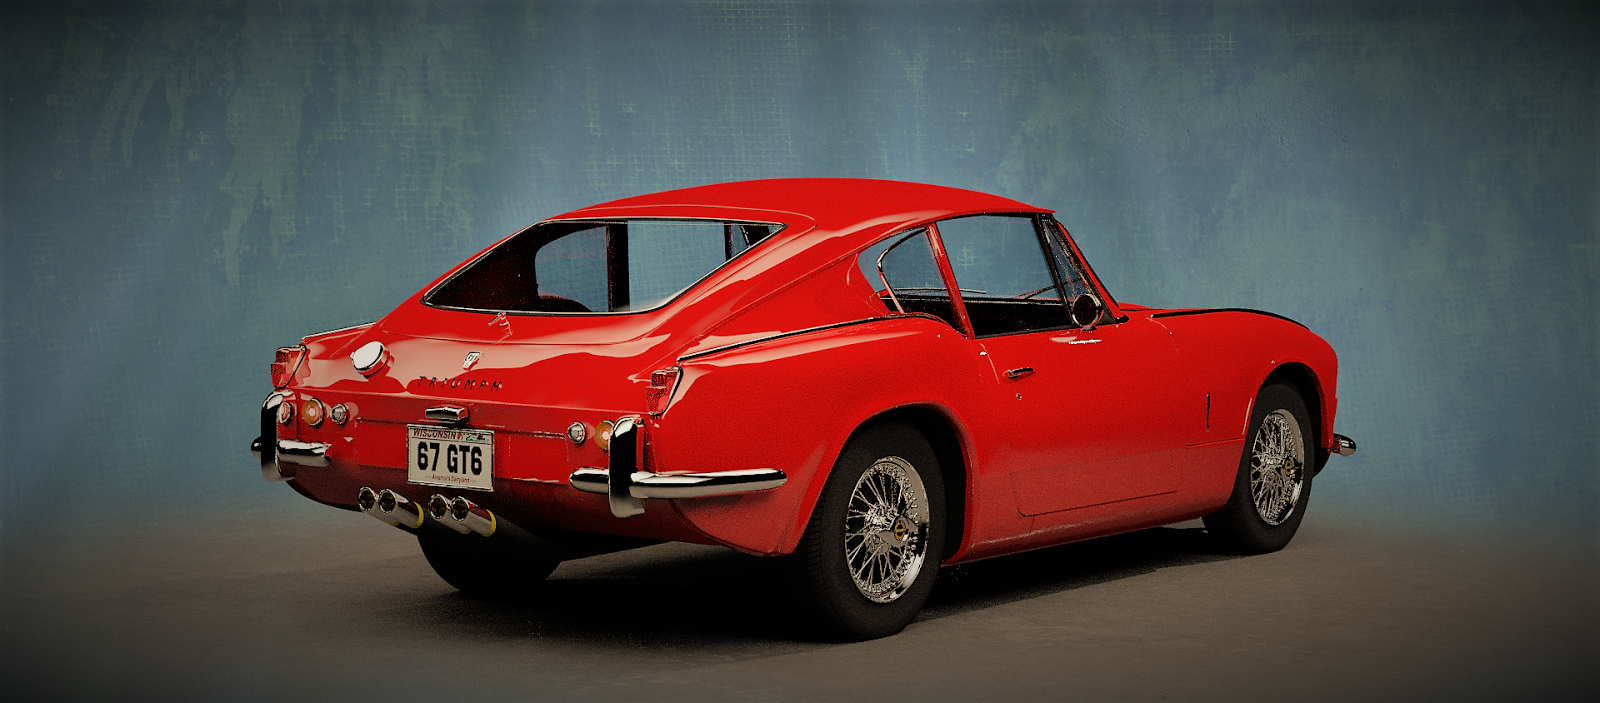 The Tinkers Workshop 1967 Triumph Gt6 Blender Model Is Completed